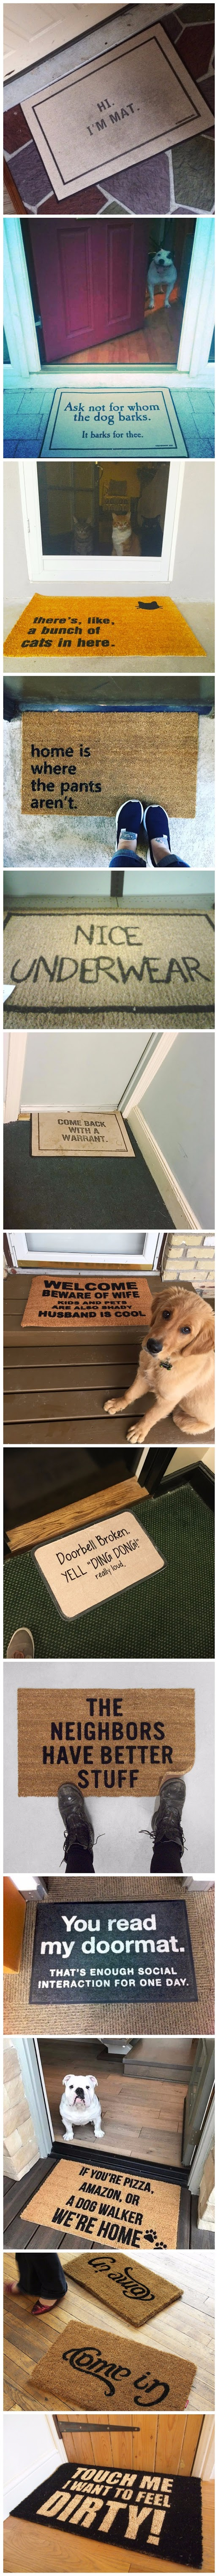 Funny doormat picture collection